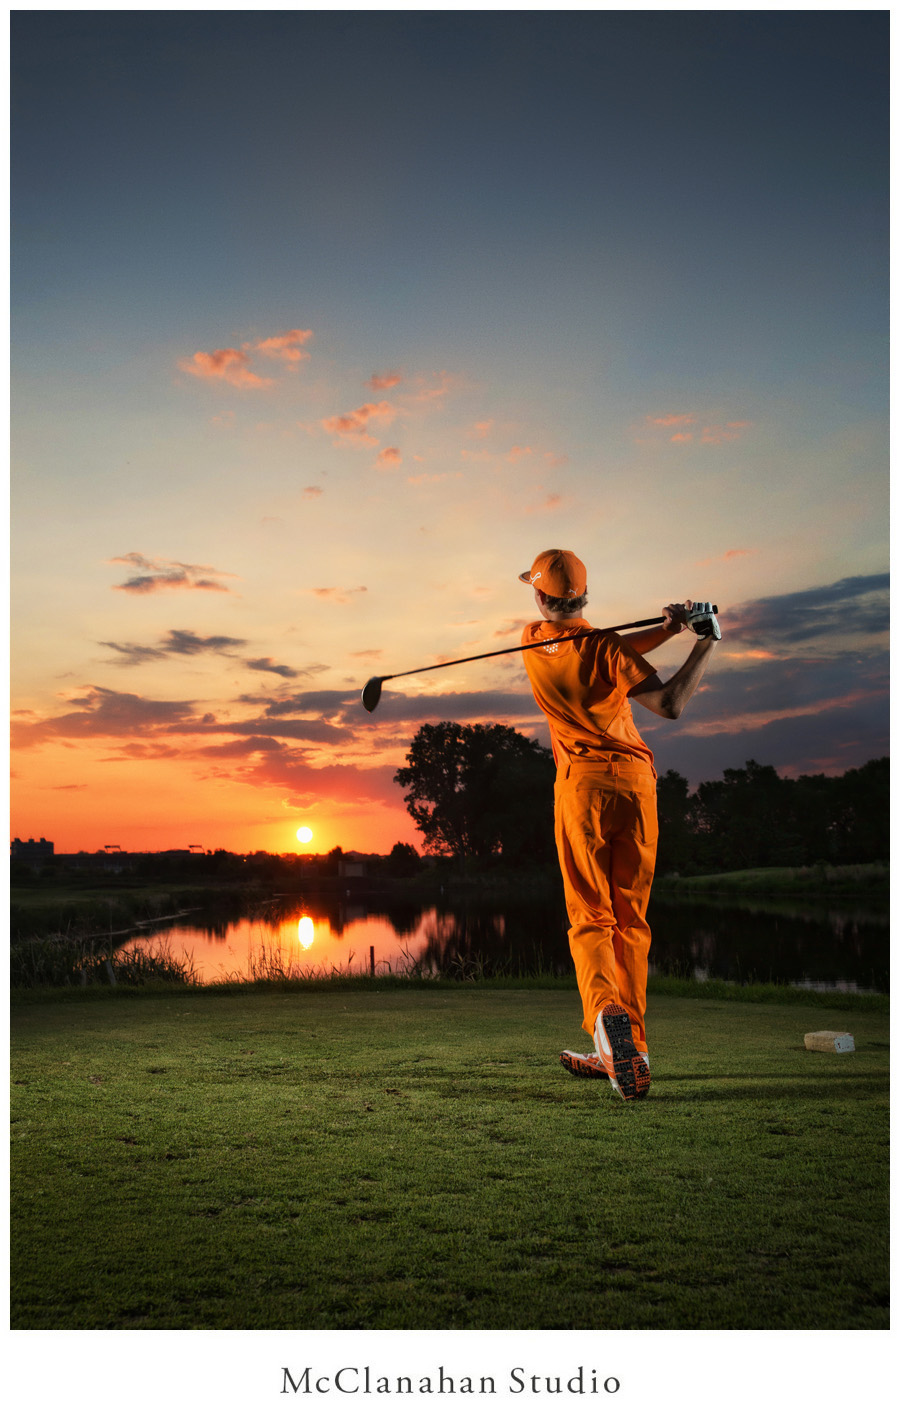 Epic senior photograph of Lyle Kuhlmann driving the first hole at Coldwater Golf Links in Ames, IA. Beautiful sunset reflecting on the water to match Lyle's rad orange golf outfit. Portrait created by internationally renowned Ames portrait photographer McClanahan Studio.